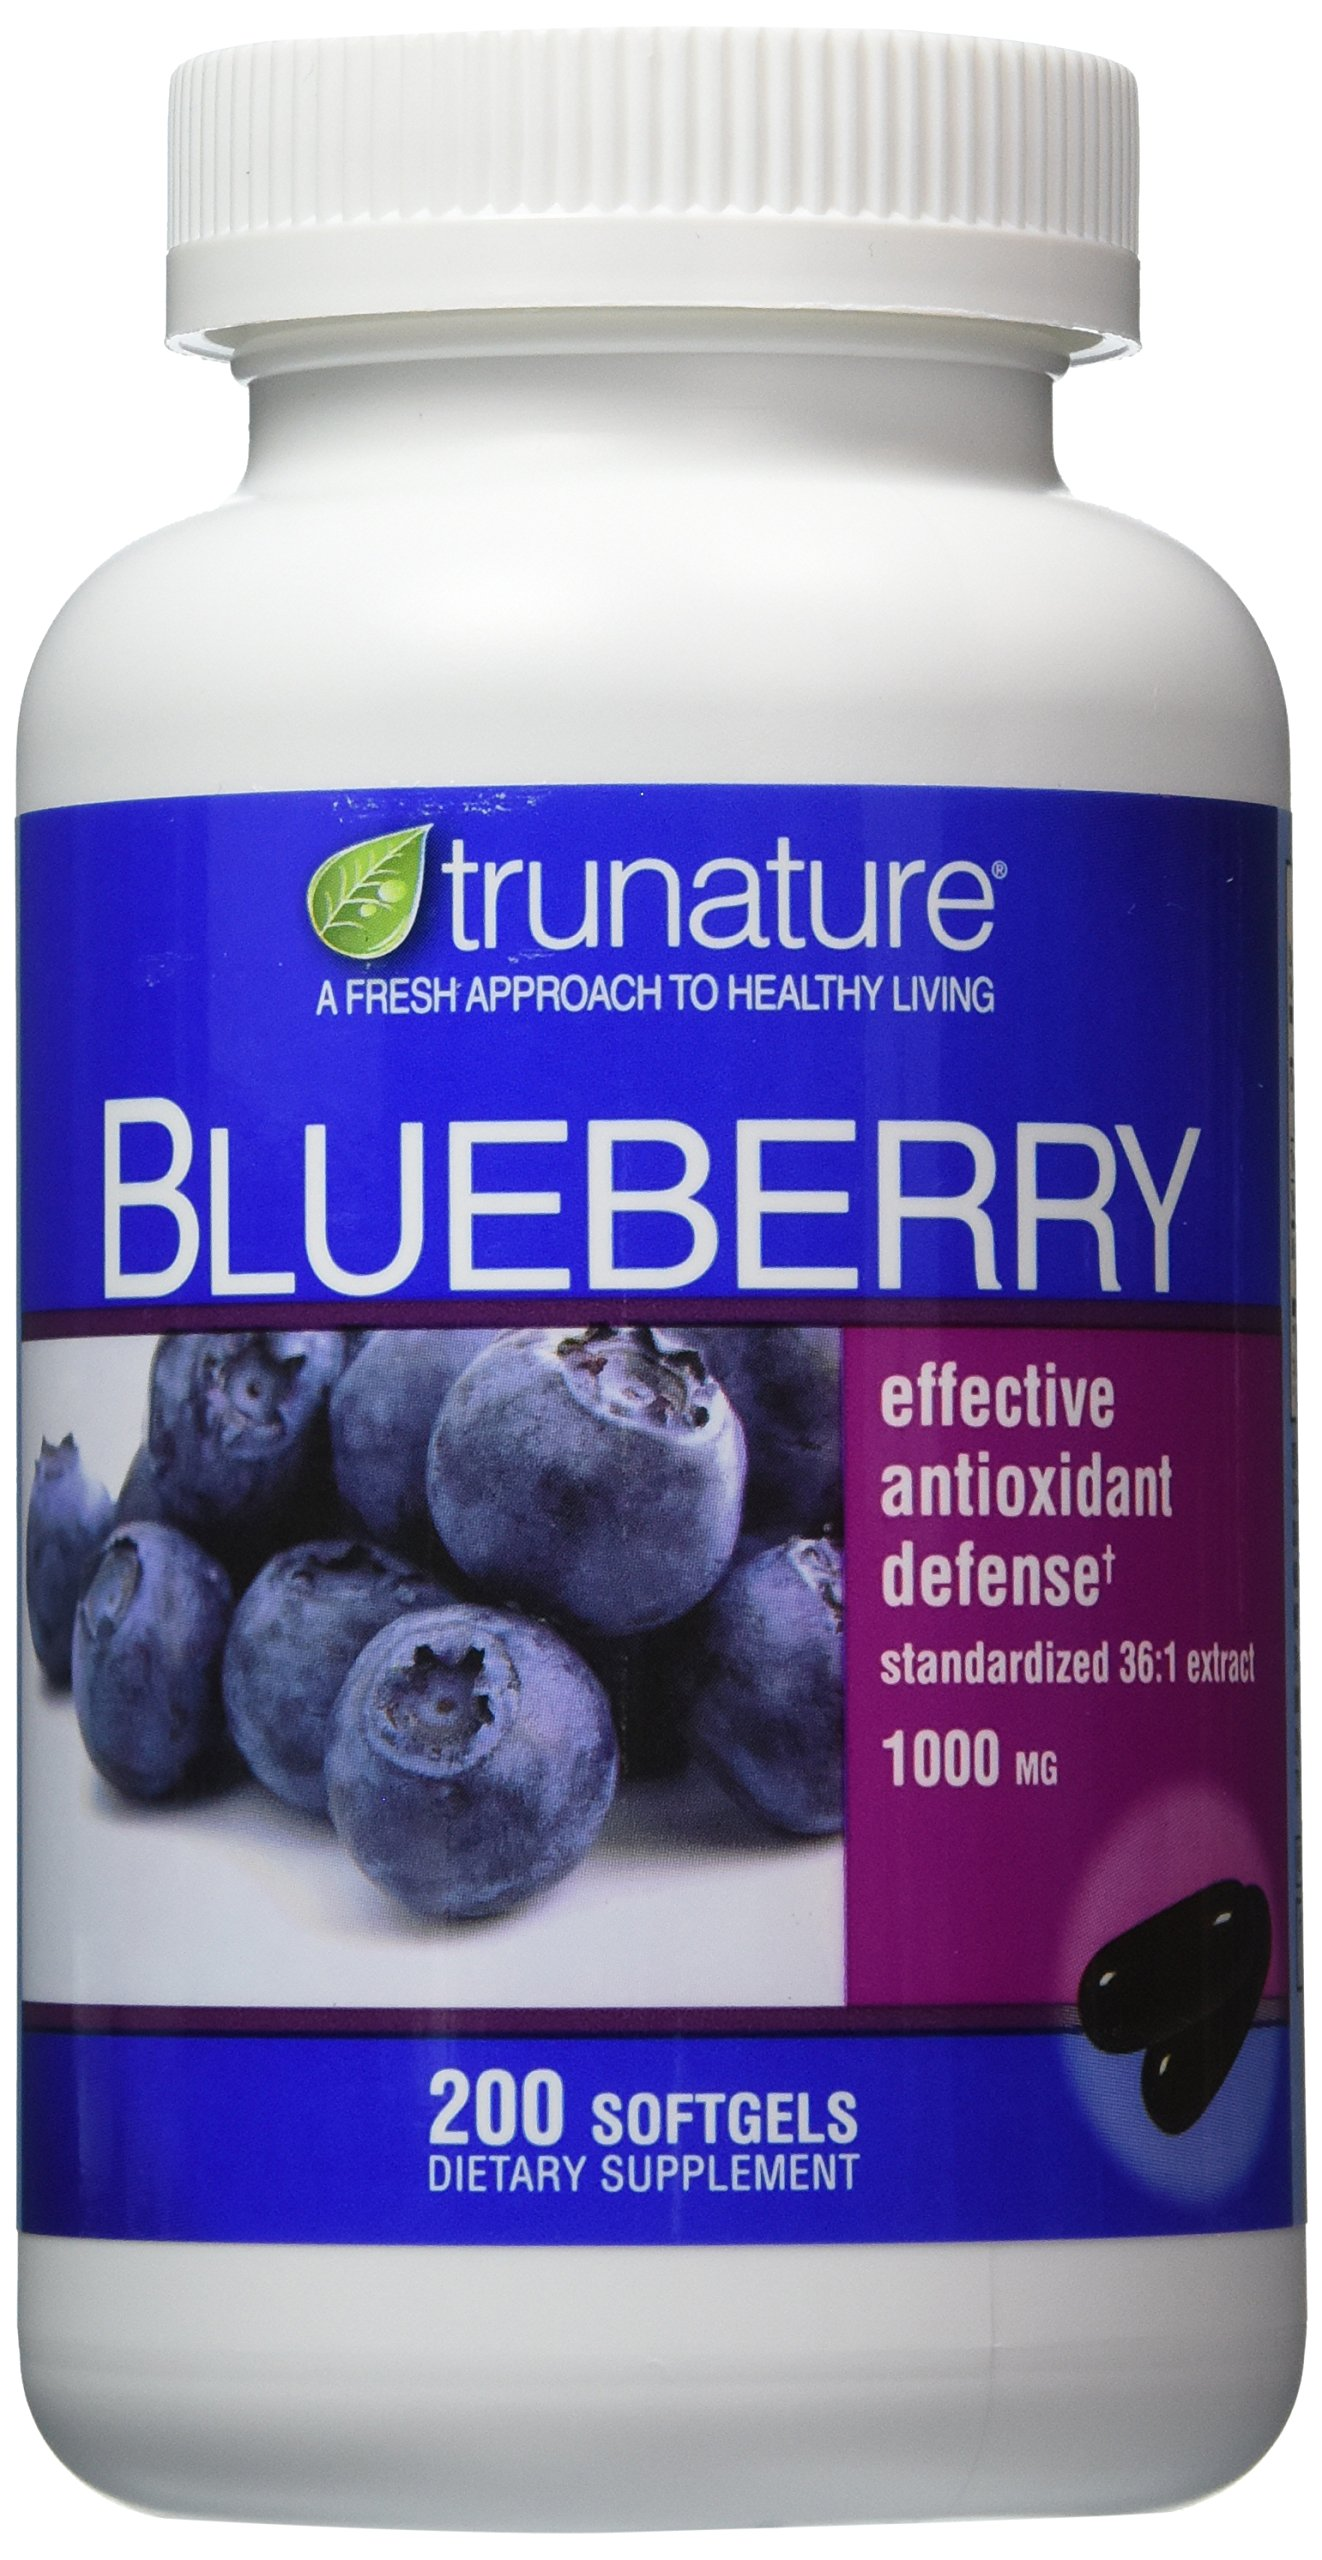 TruNature Blueberry Standardized Extract 1000 mg - 2 Bottles, 200 Softgels Each